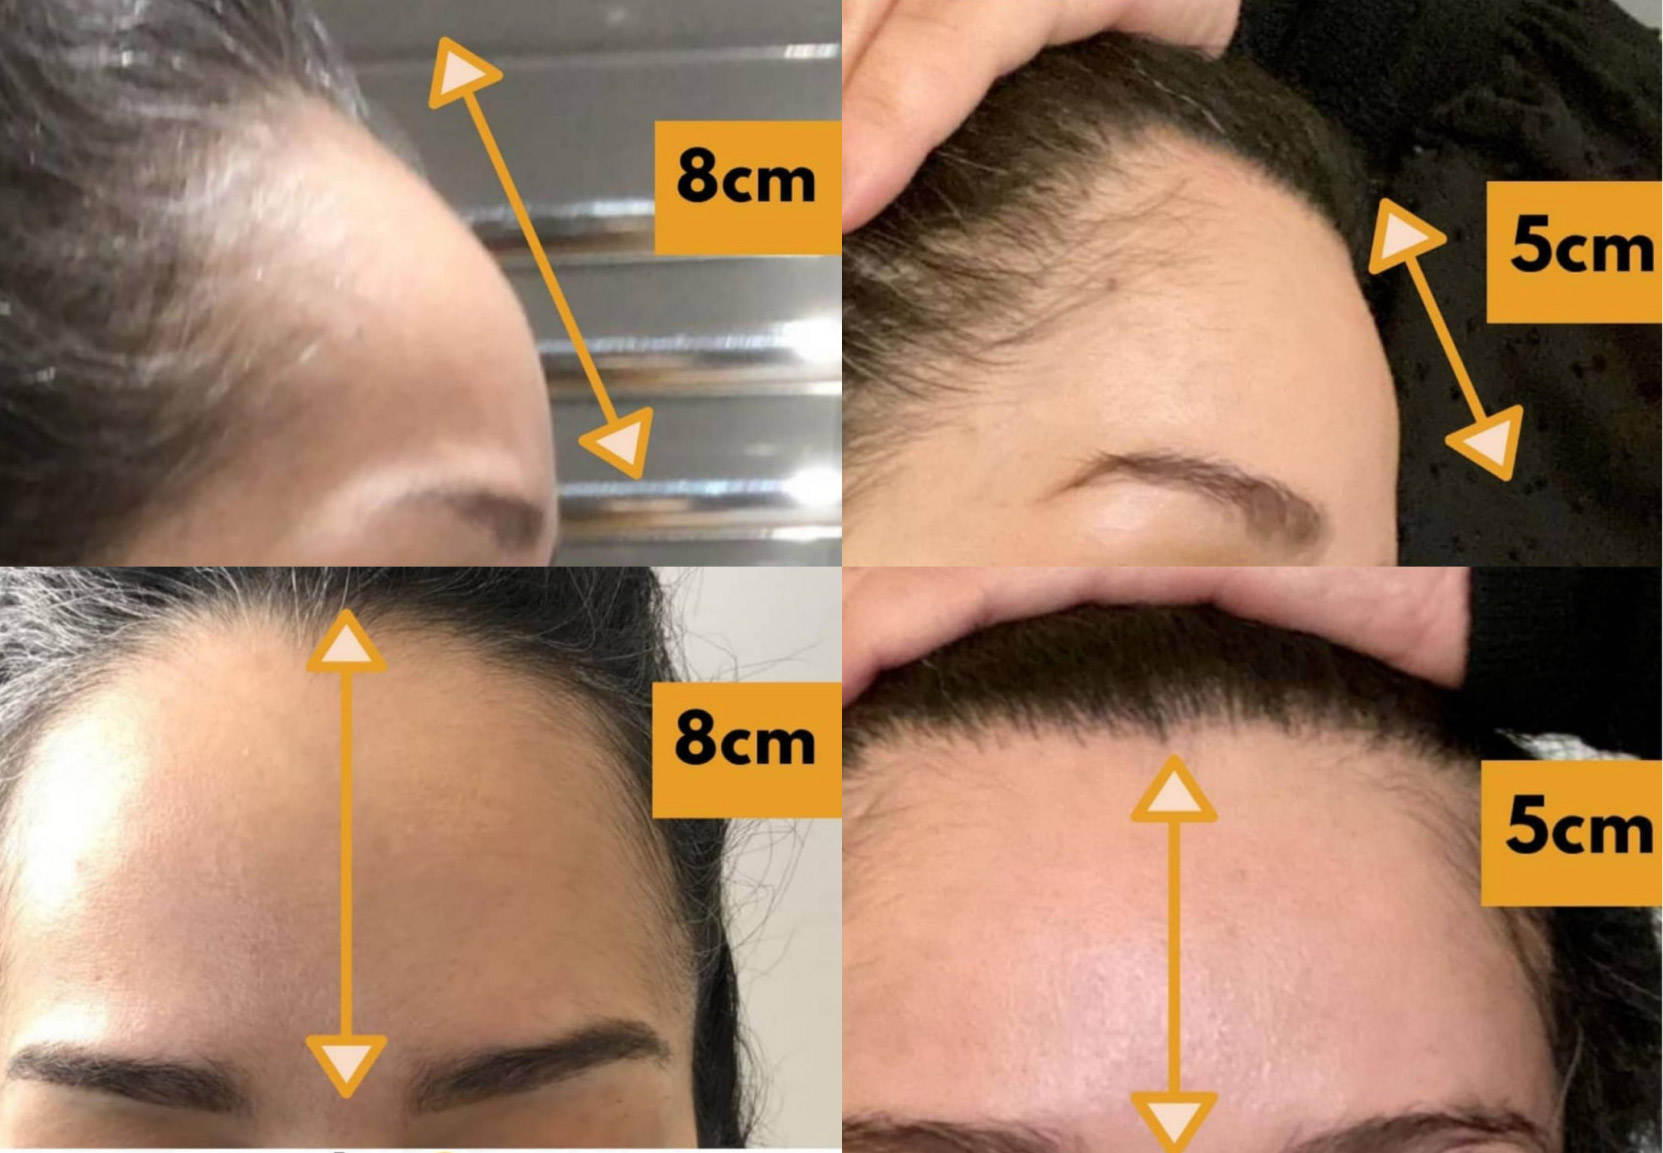 What makes FUE Hair Transplant Procedure the most Successful Technique?